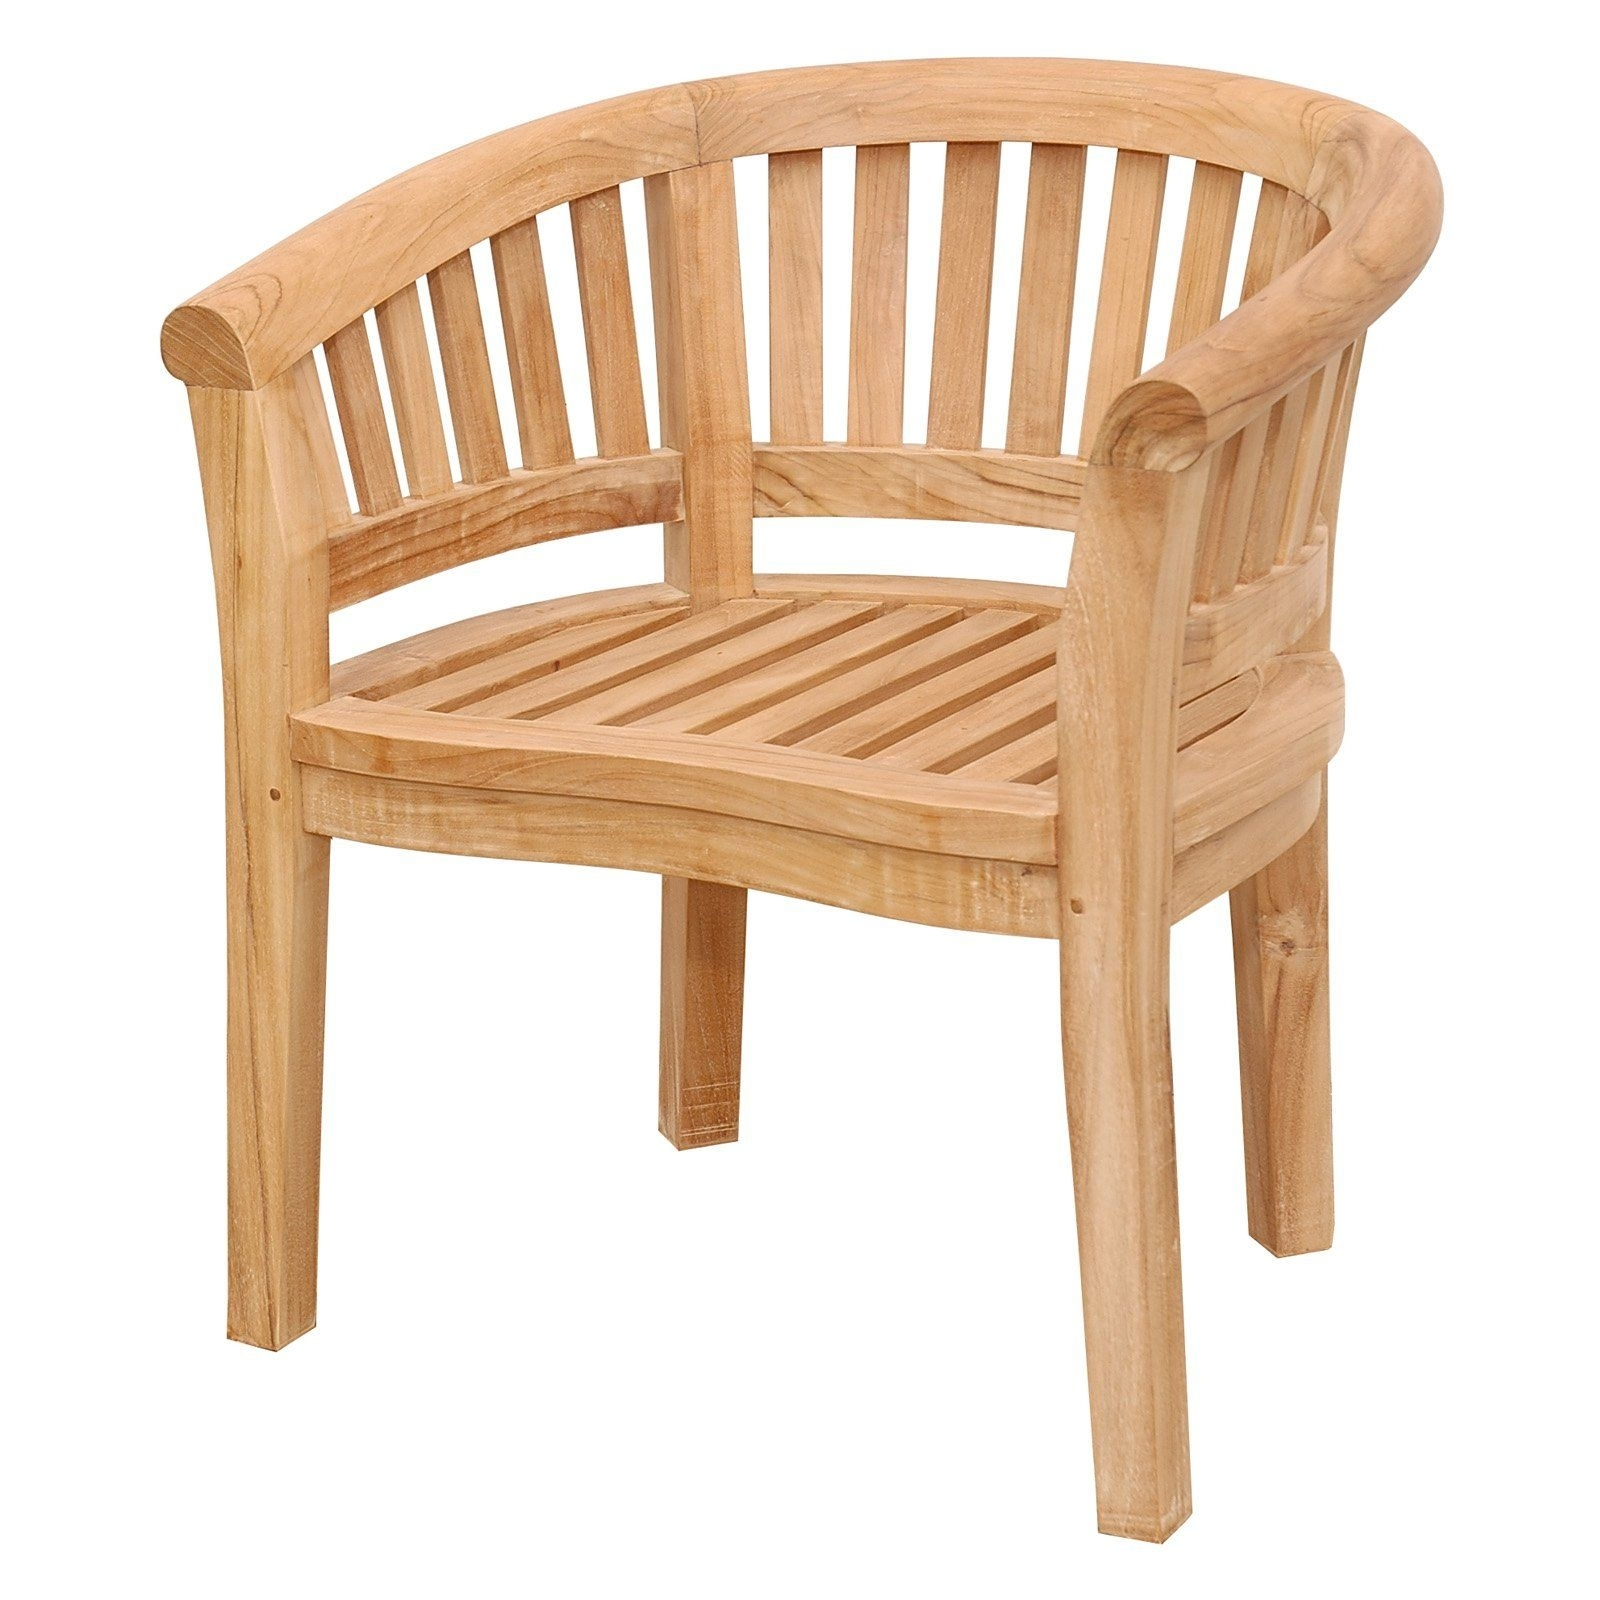 Picture of: Wood Outdoor Arm Chairs Ideas On Foter